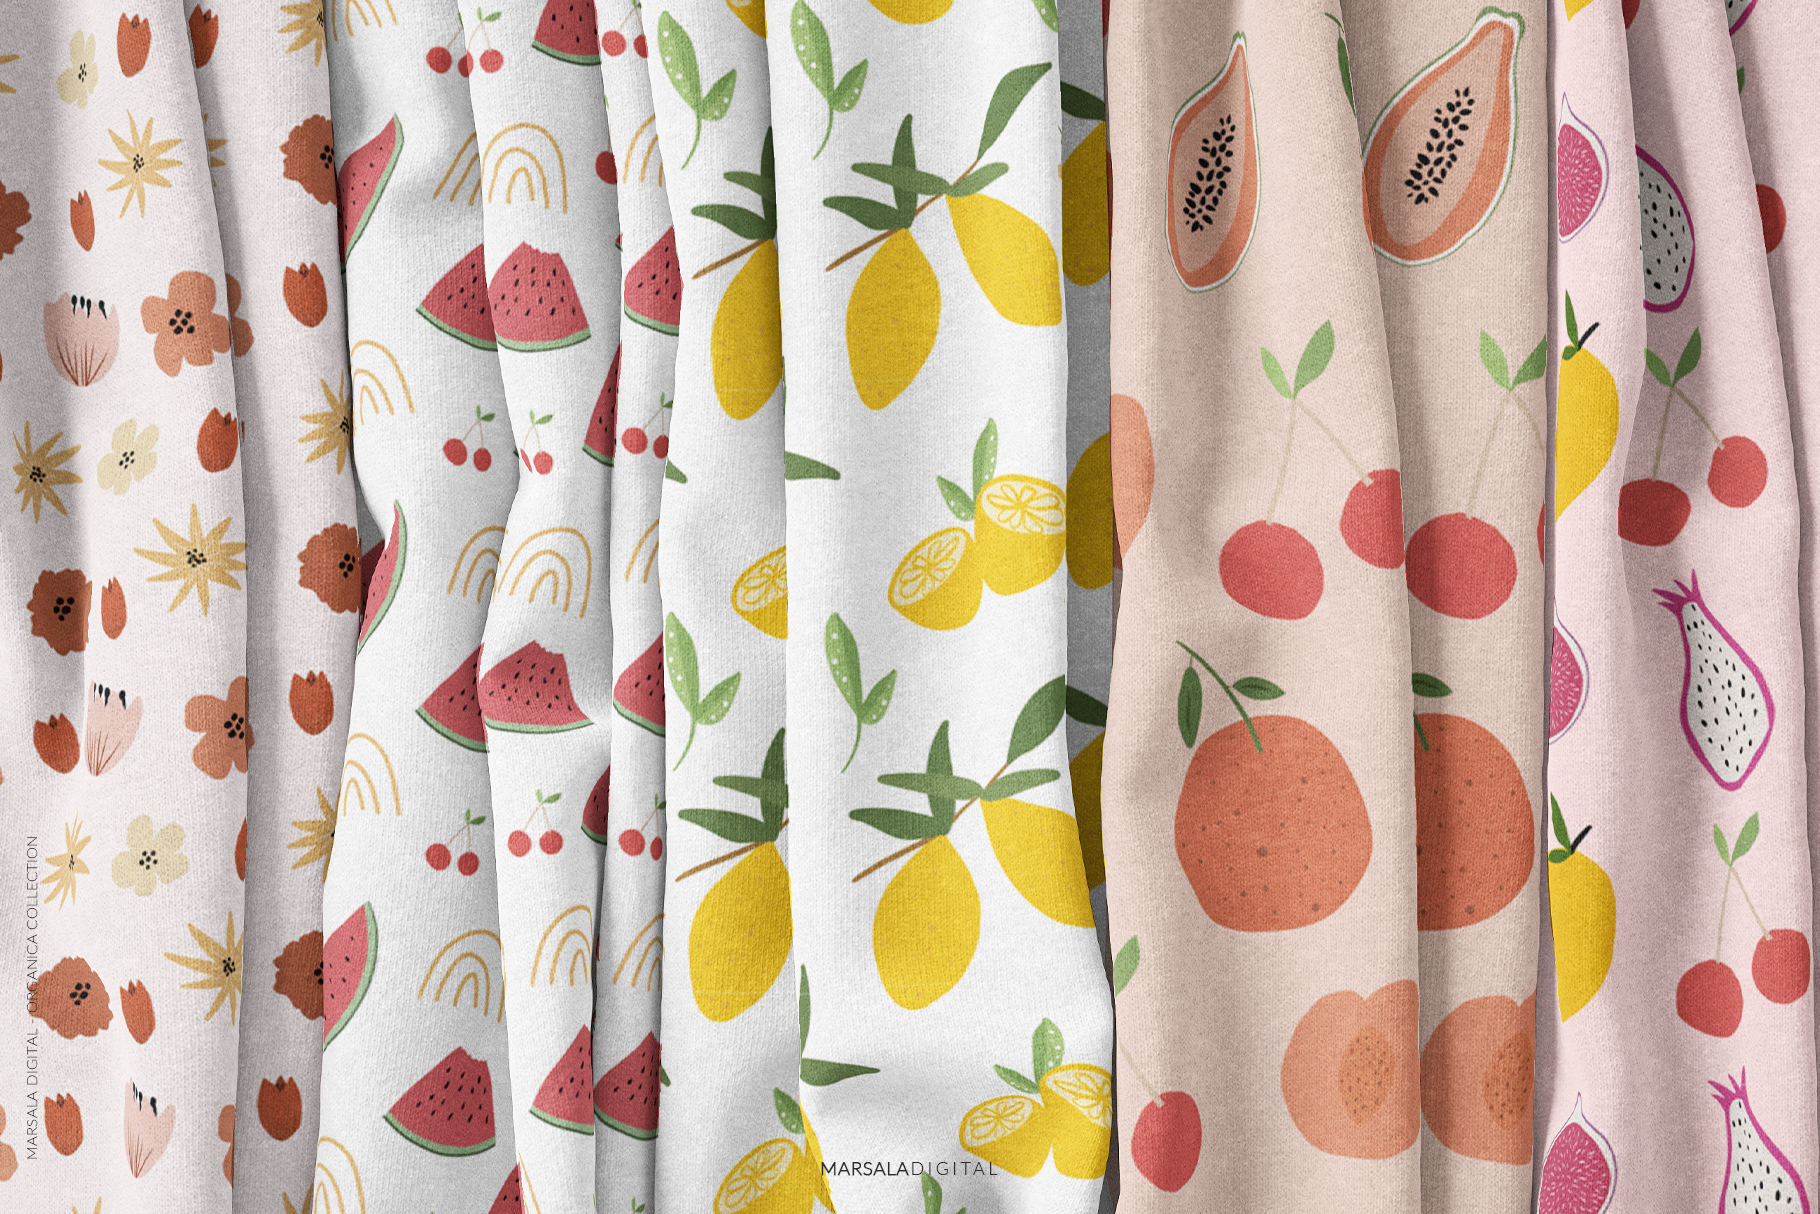 Abstract Shapes & Fun Fruits Patterns and Graphics example image 7